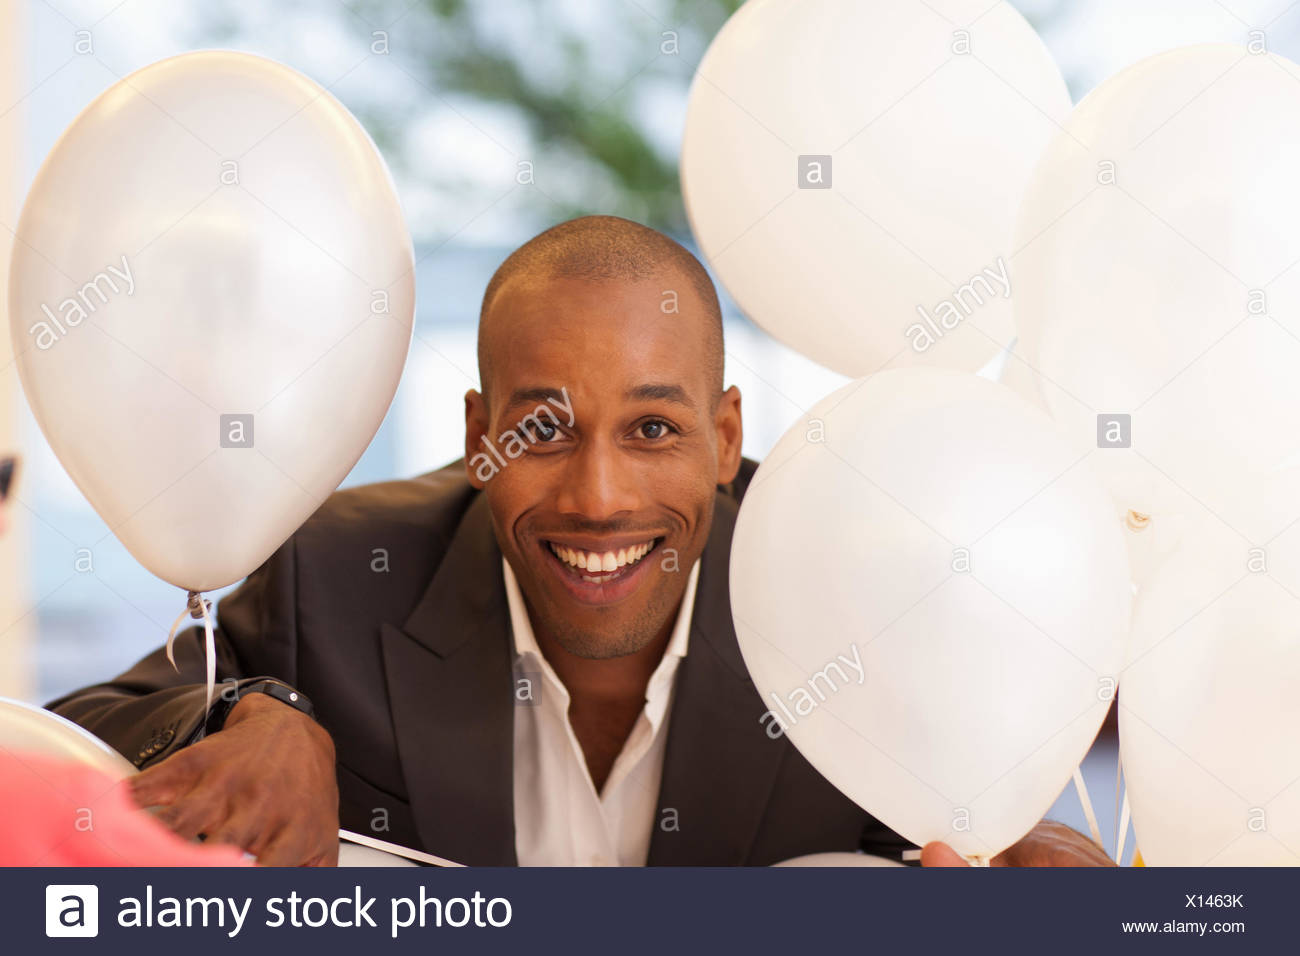 Man with balloons - Stock Image